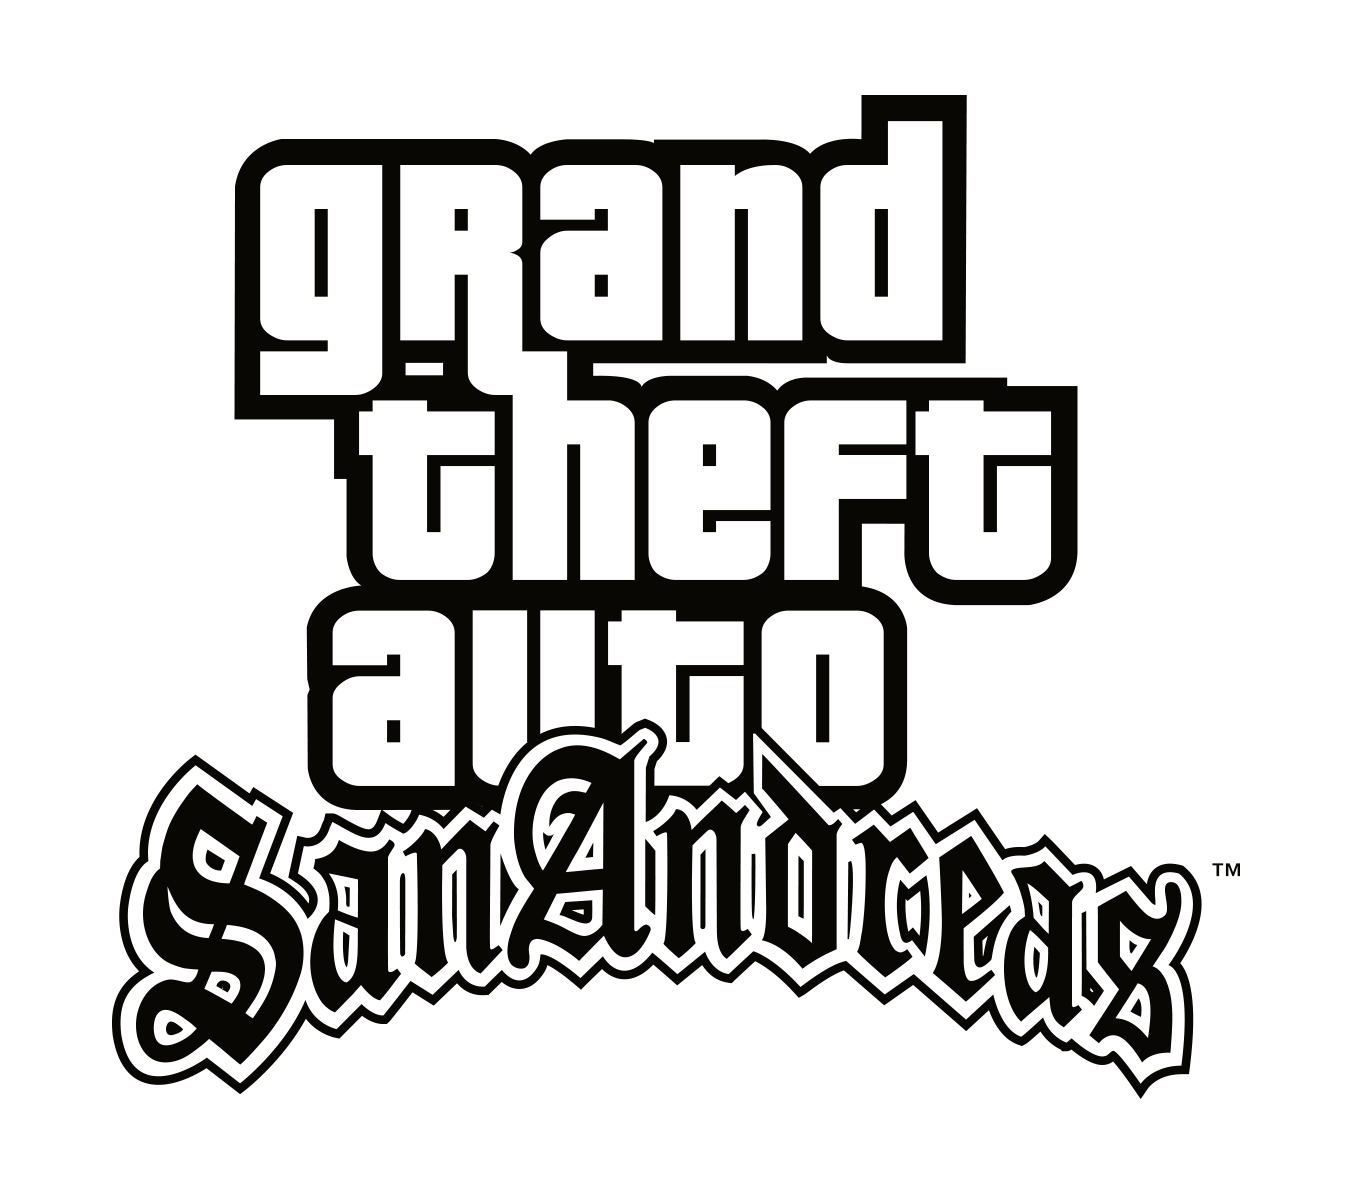 gta san andreas sfx and stream files torrent download